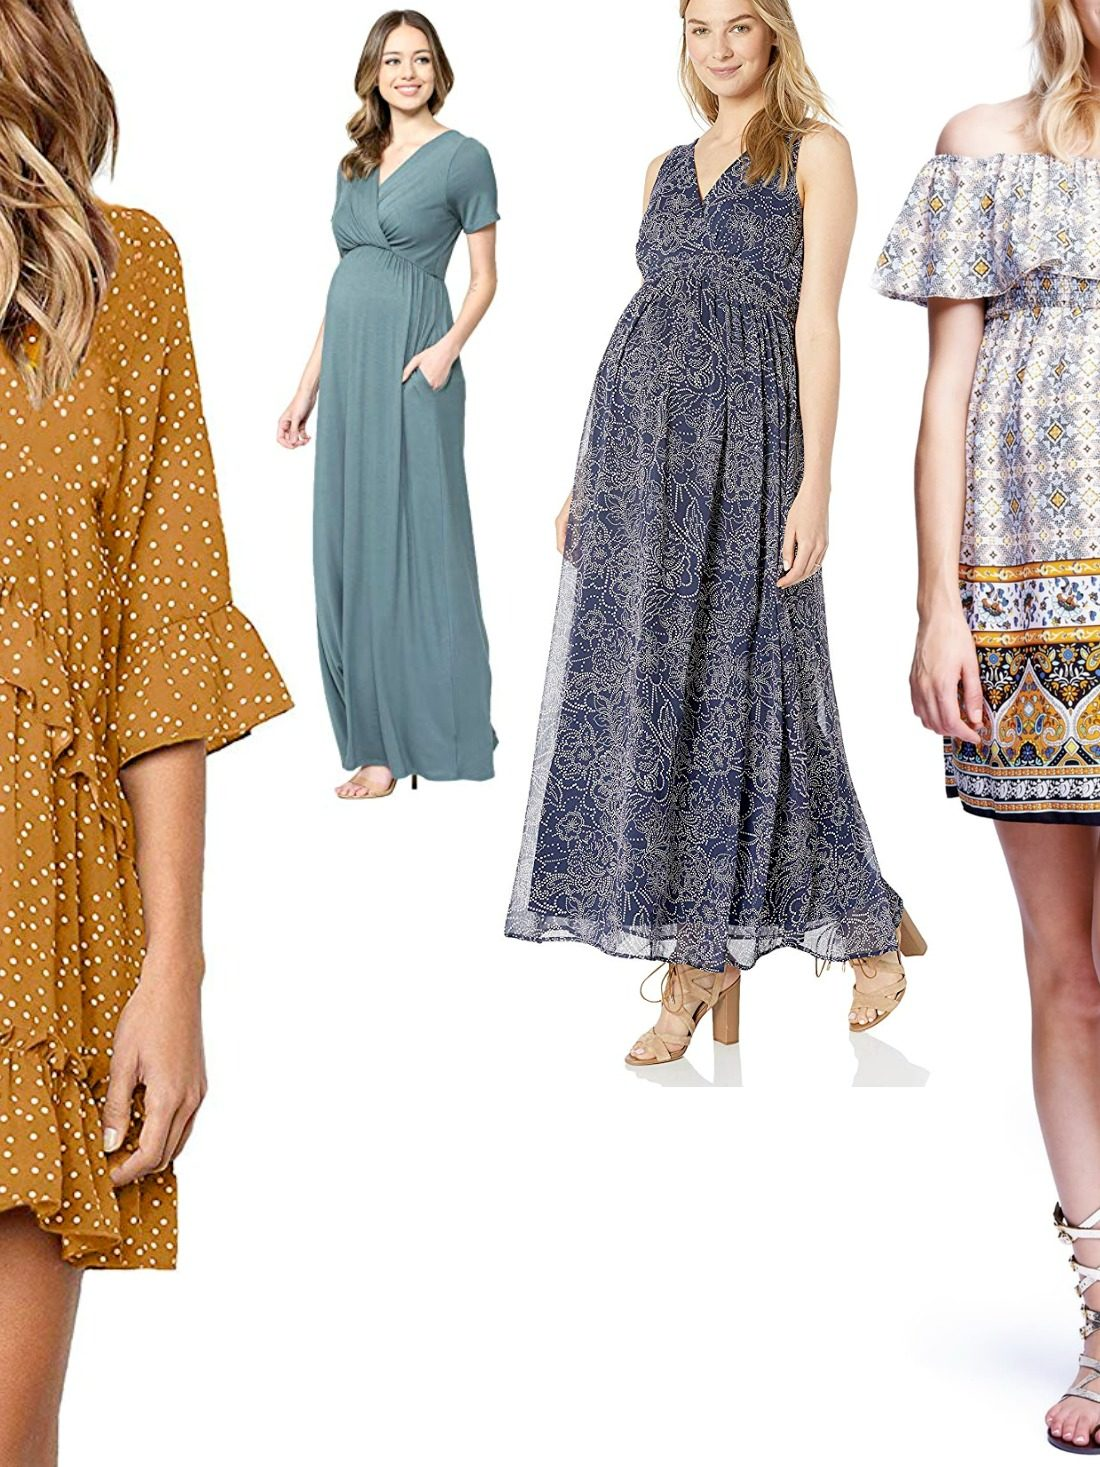 6a67539d26 Best Maternity Dresses For Summer Without Sacrificing Style And Comfort!